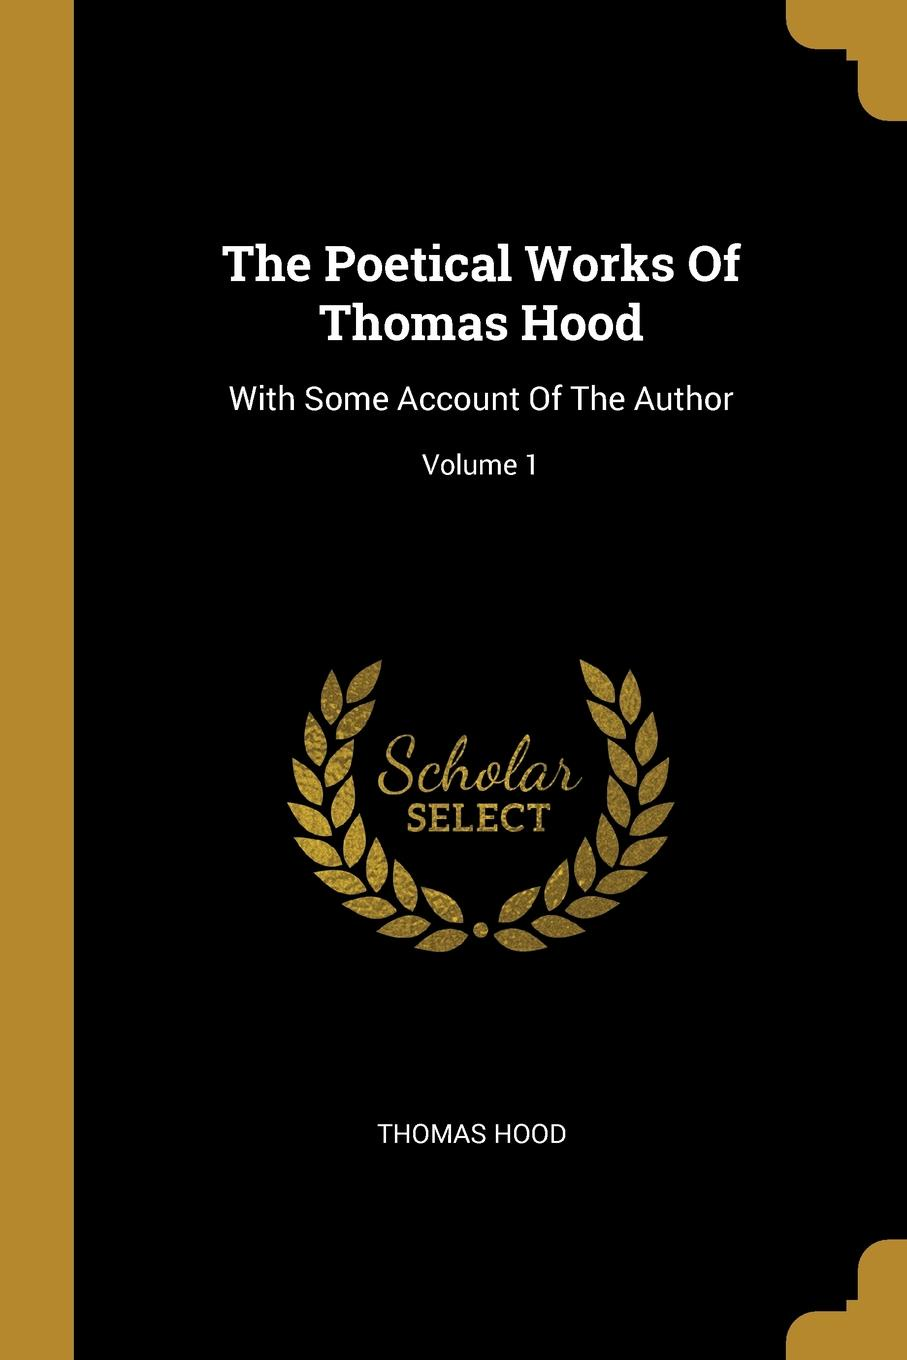 Thomas Hood. The Poetical Works Of Thomas Hood. With Some Account Of The Author; Volume 1